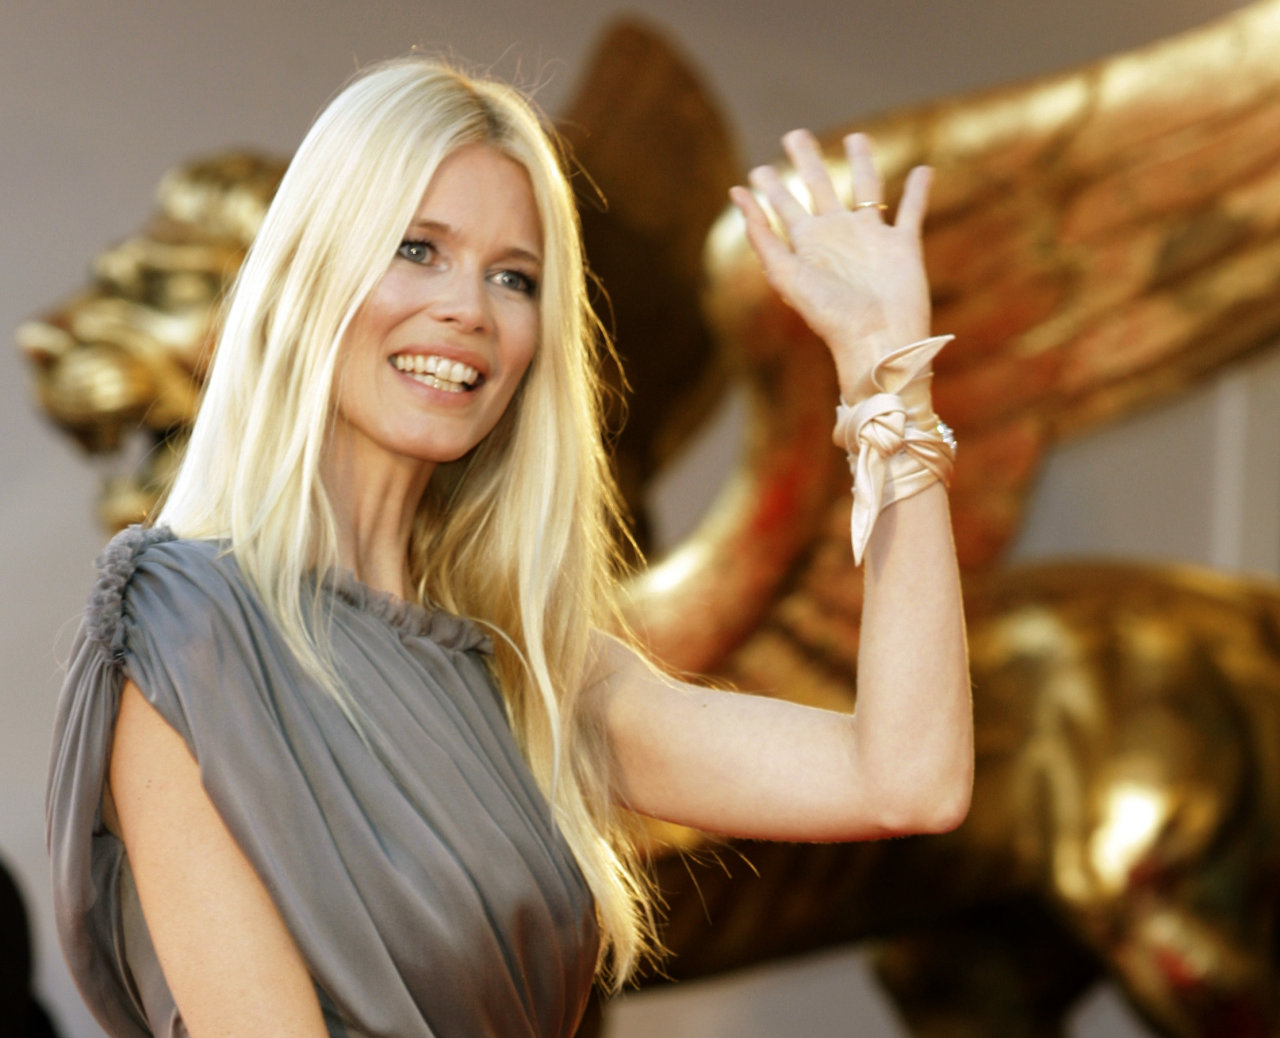 Celebrity Claudia Schiffer nudes (64 foto and video), Sexy, Cleavage, Selfie, butt 2006